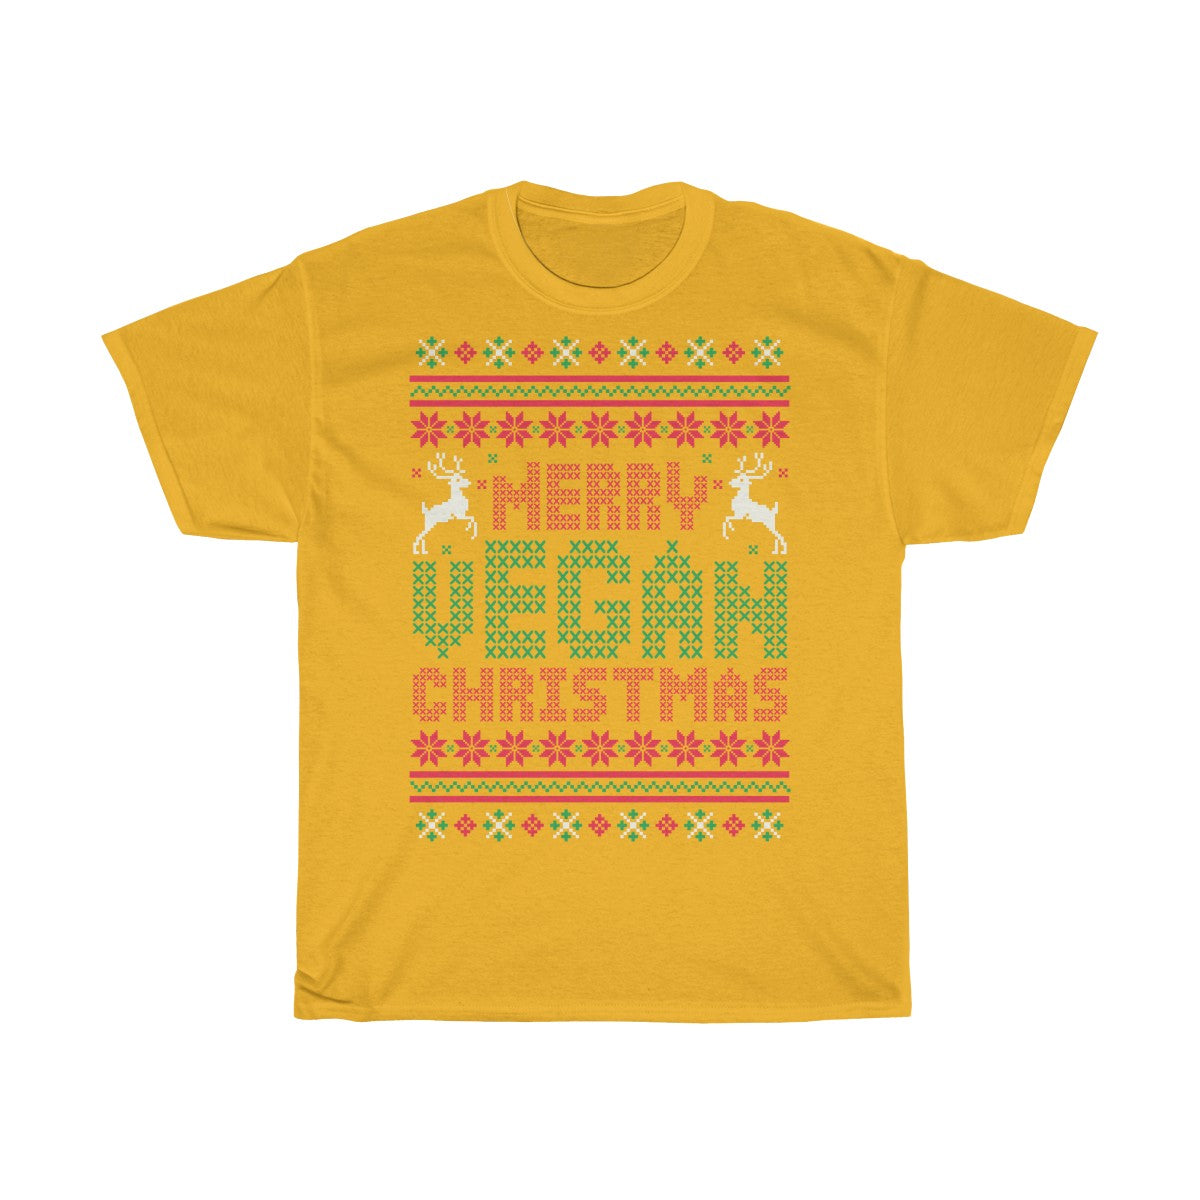 Merry Vegan Christmas - Unisex T-Shirt - My Vegan Menu